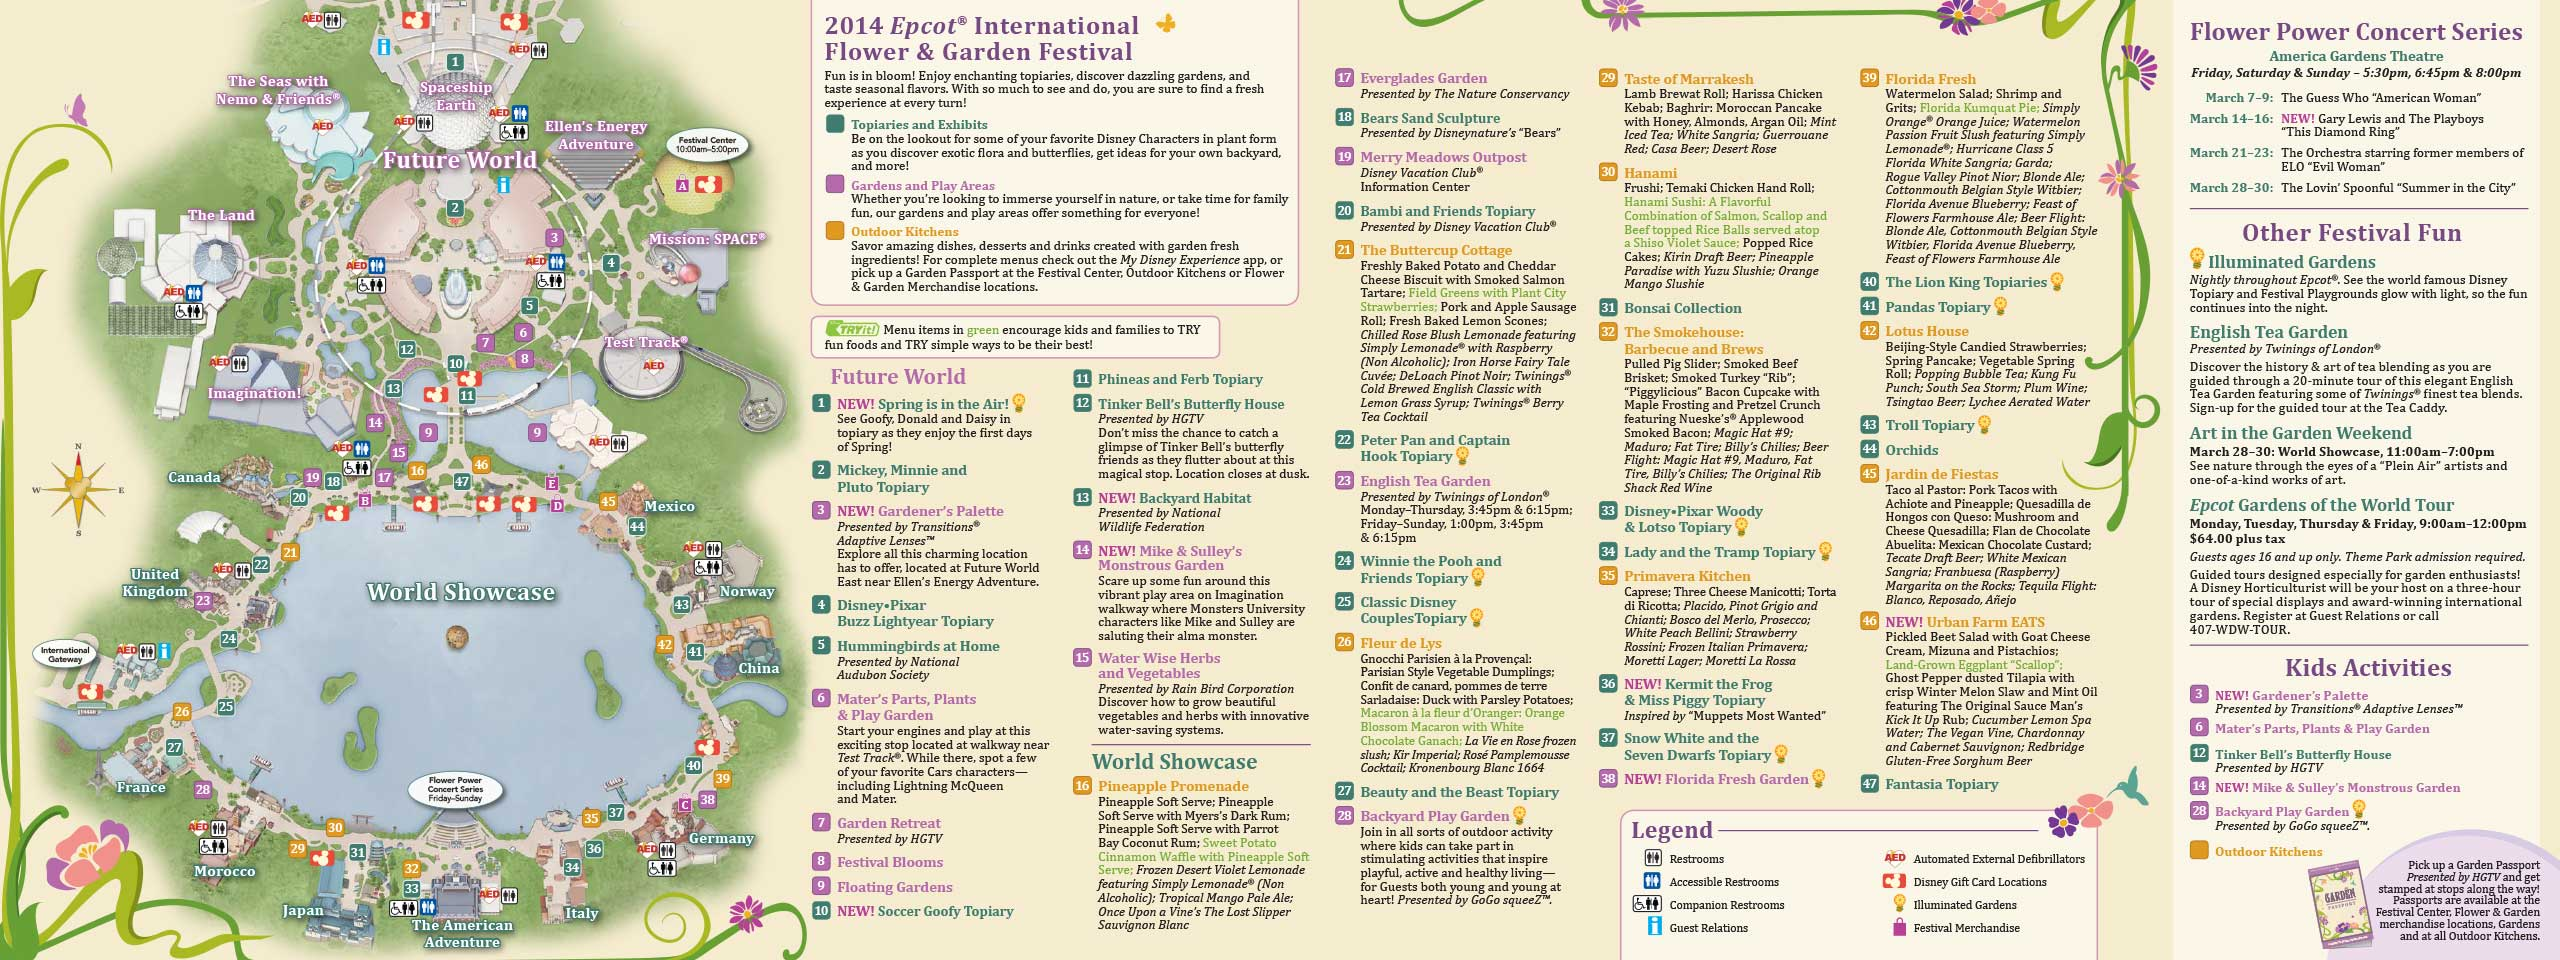 2014 epcot flower and garden festival guide map photo 1 of 2 - Epcot flower and garden 2017 menu ...